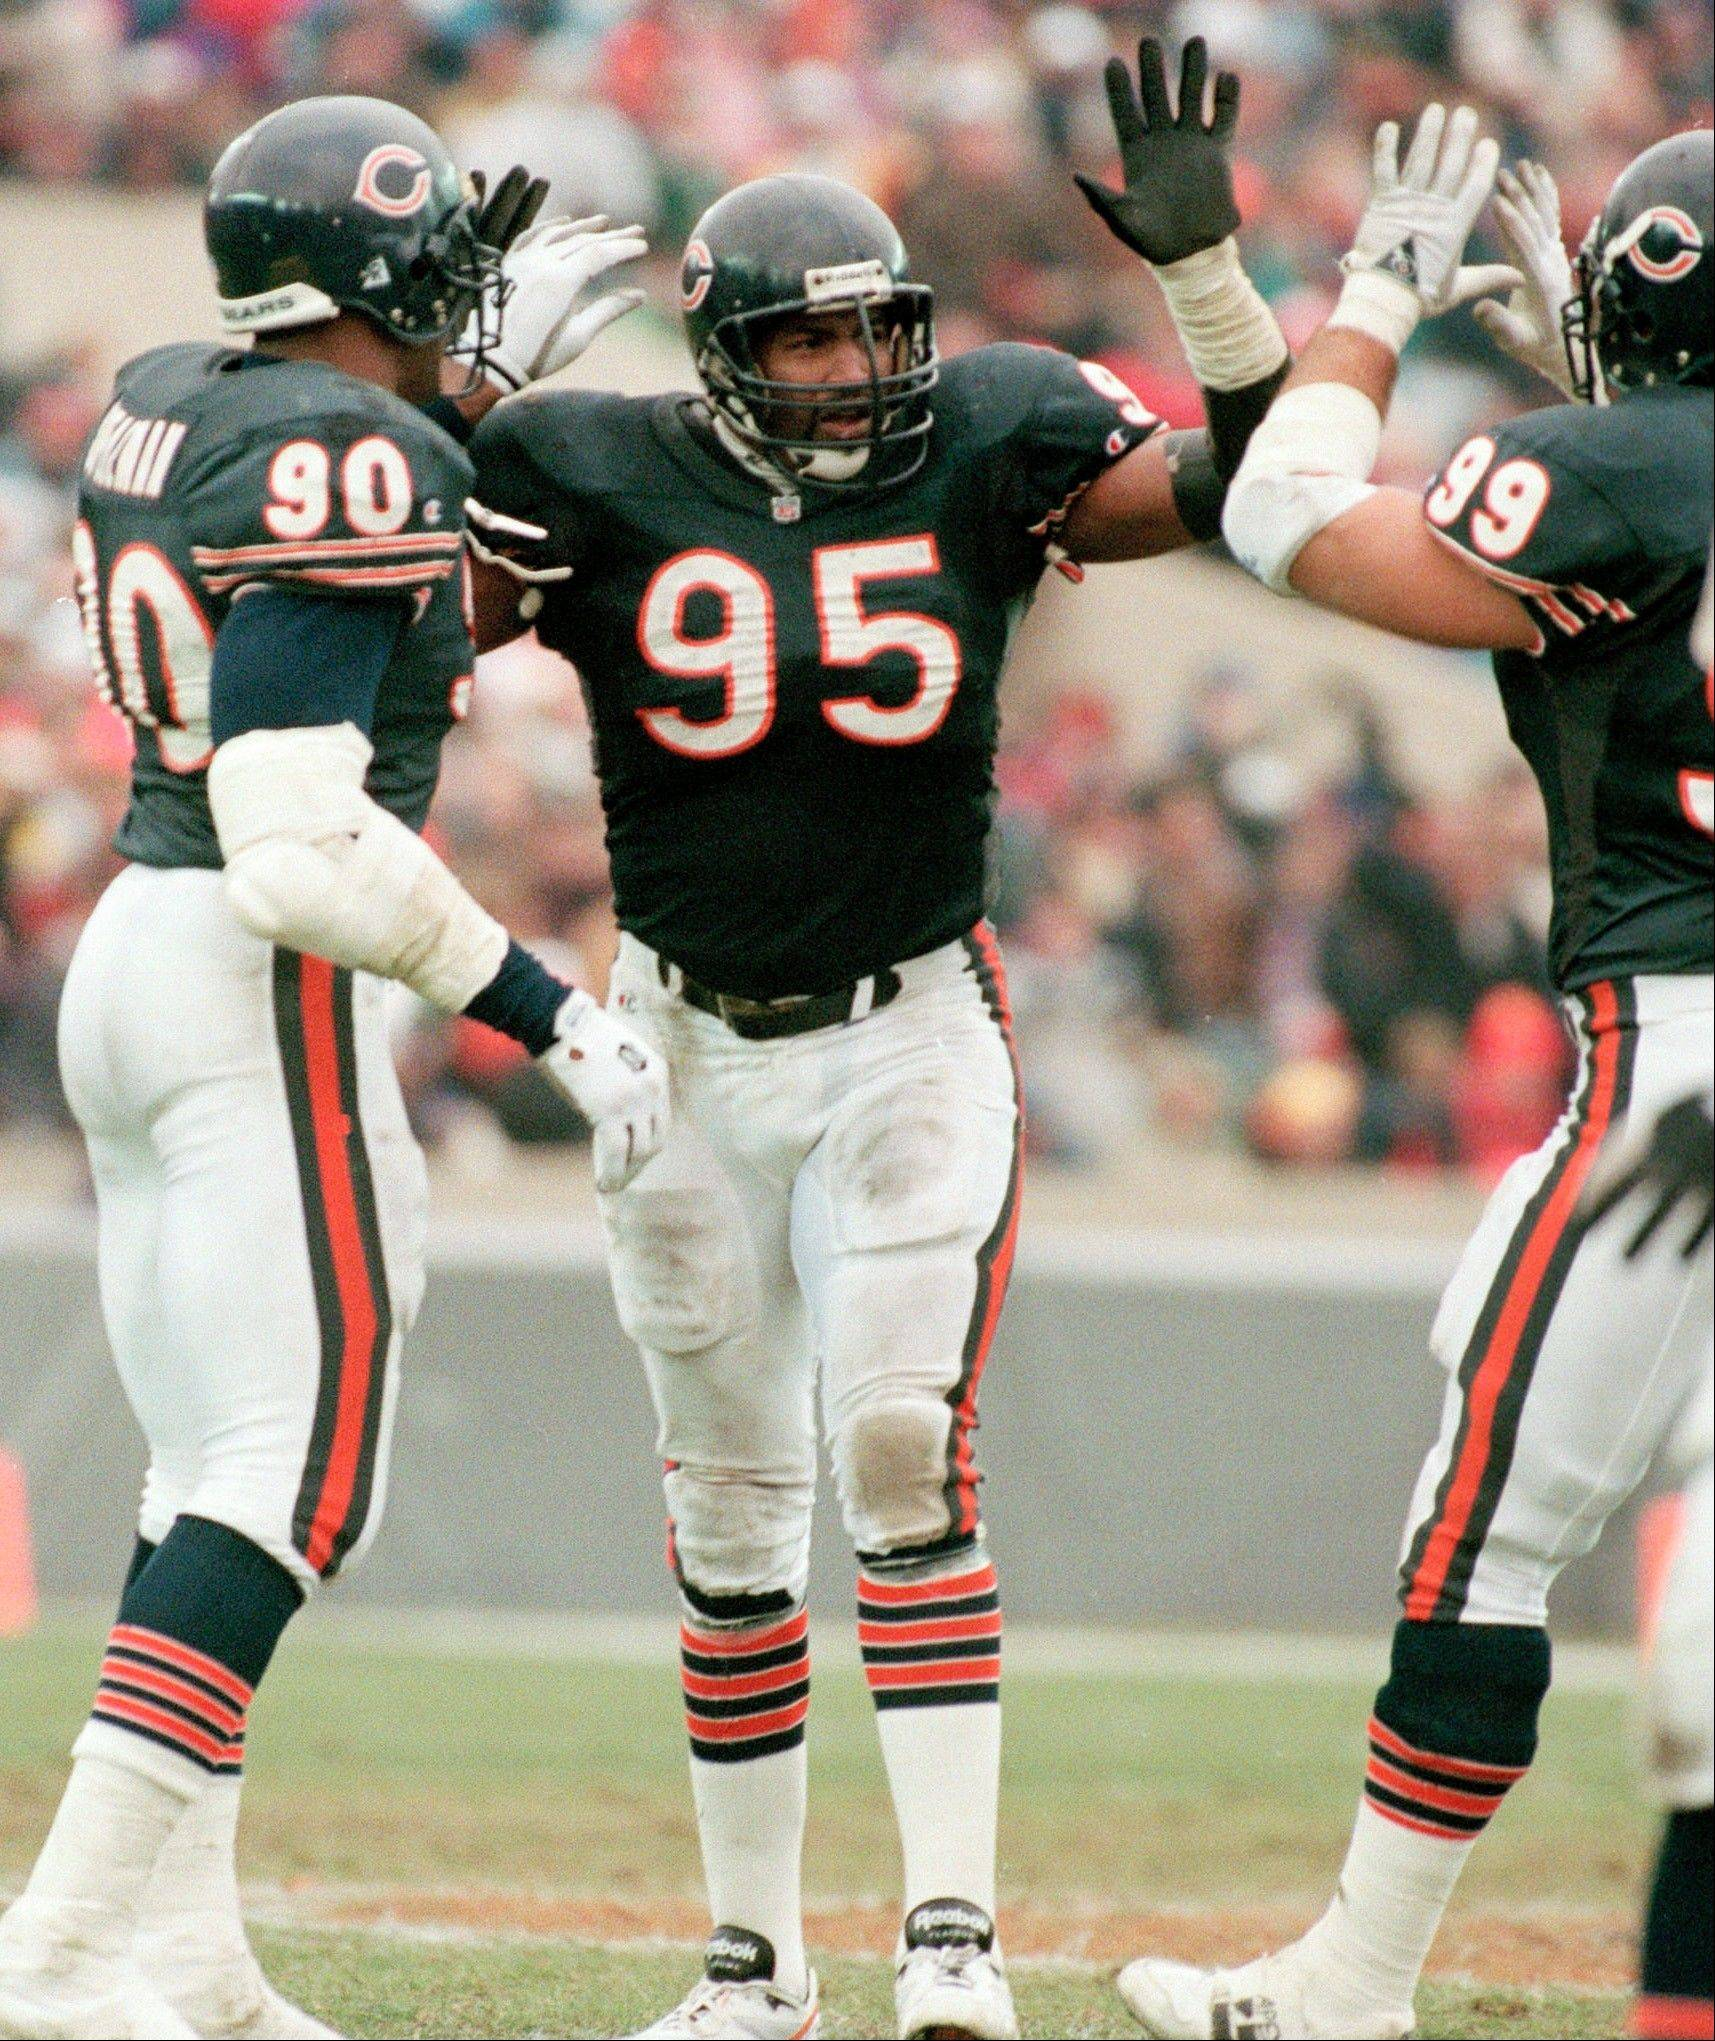 Richard Dent will finally become the third member of the legendary 1985 Chicago Bears defense to be inducted into the Hall of Fame on Saturday, Aug. 6, 2011, when he joins fellow �Monsters of the Midway� Dan Hampton and Mike Singletary, an honor that his teammates and coaches say is long overdue. (AP Photo/David Boe, File)